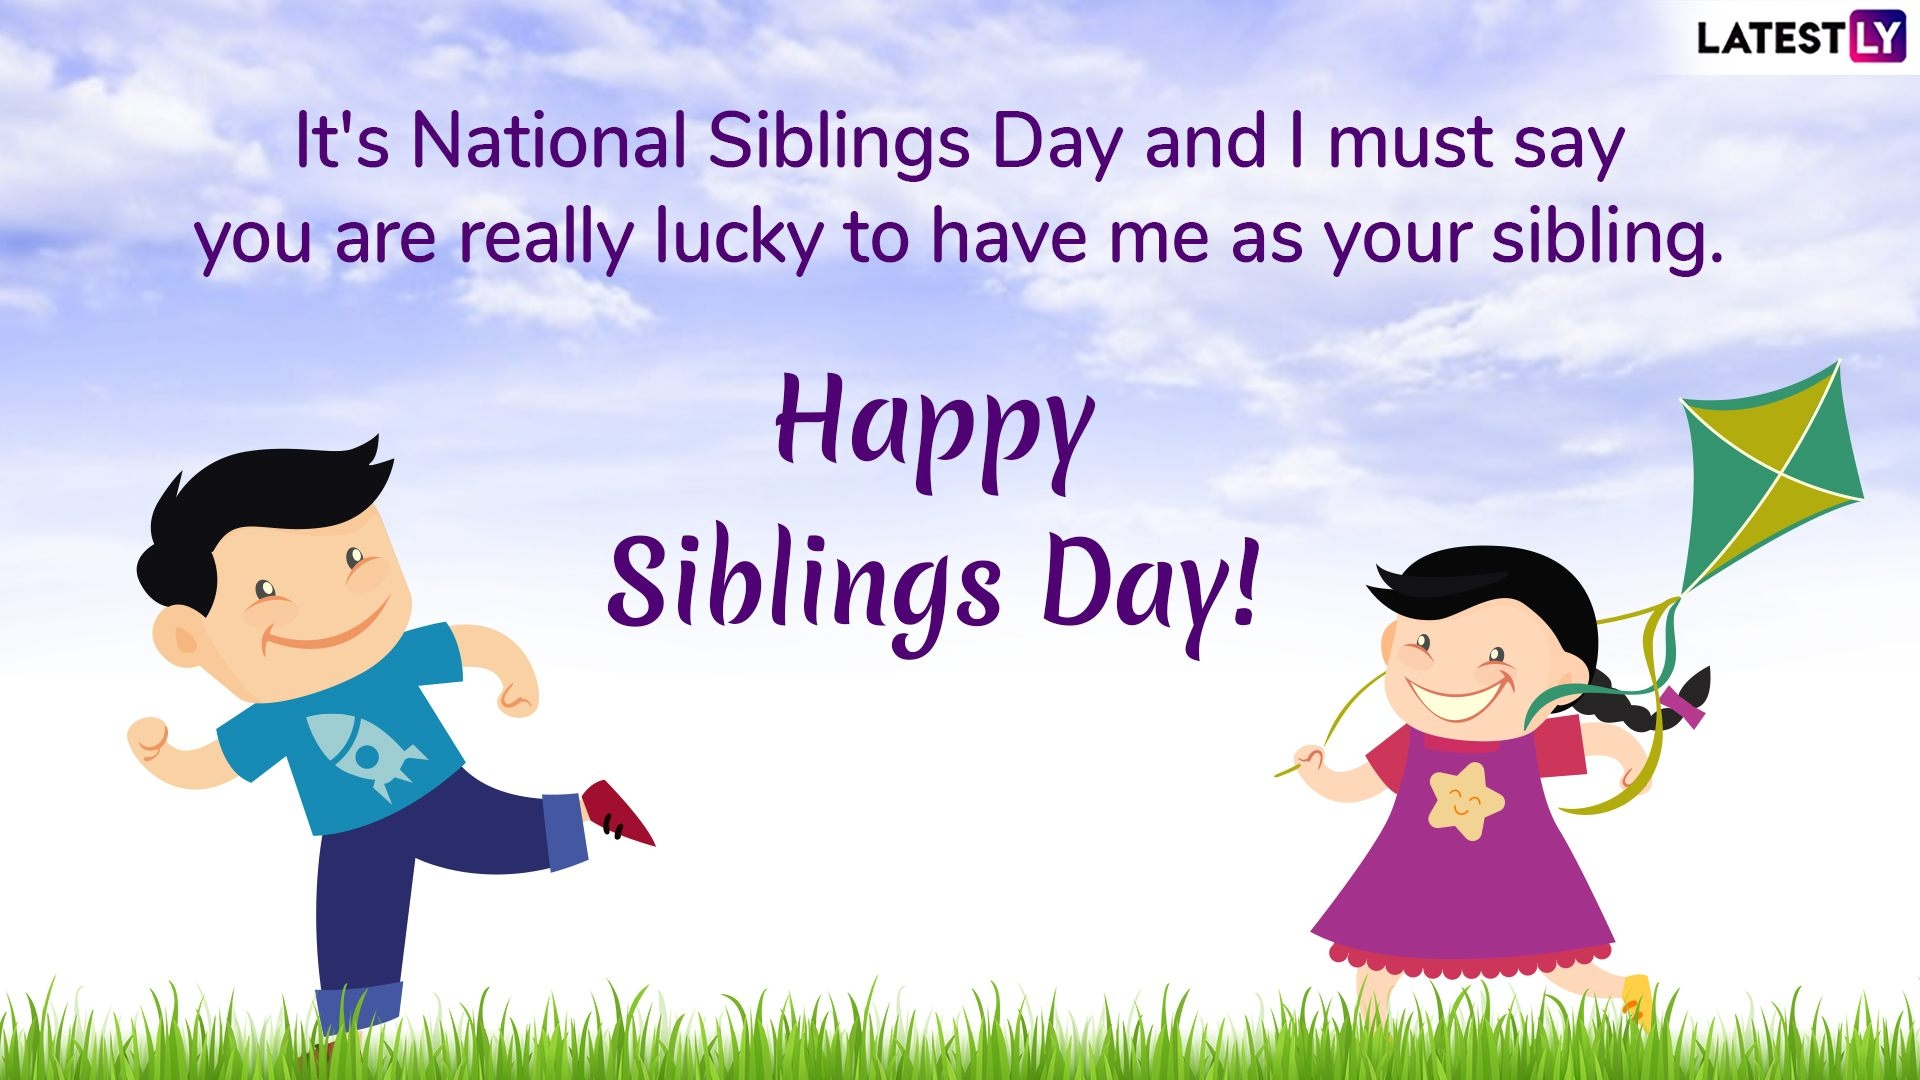 National Siblings Day 2019 Funny Quotes Gif Images And Sms